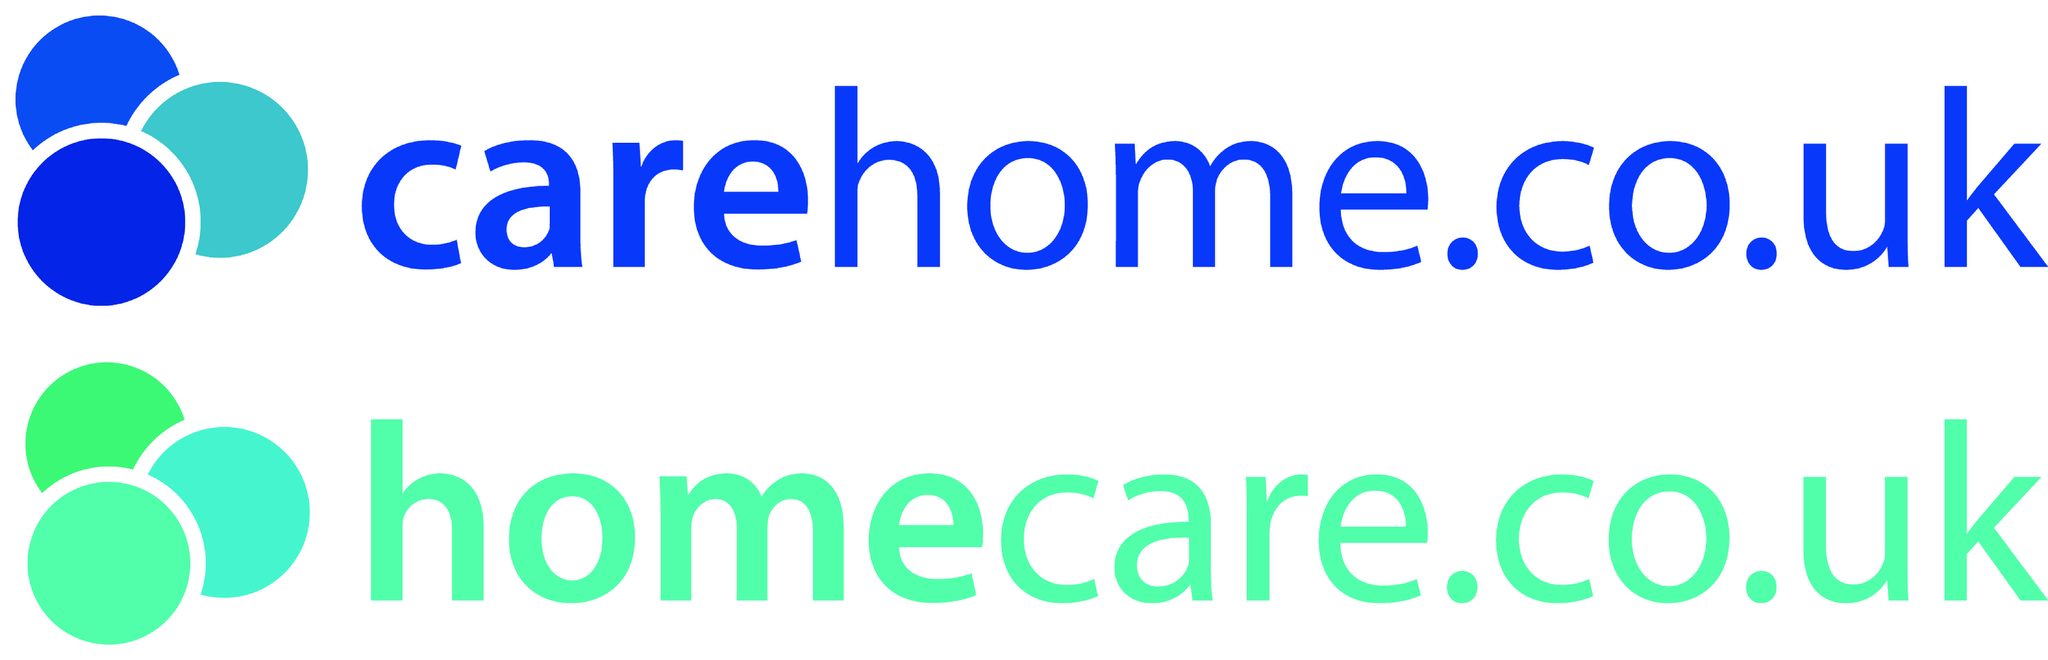 carehome.co.uk & homecare.co.uk